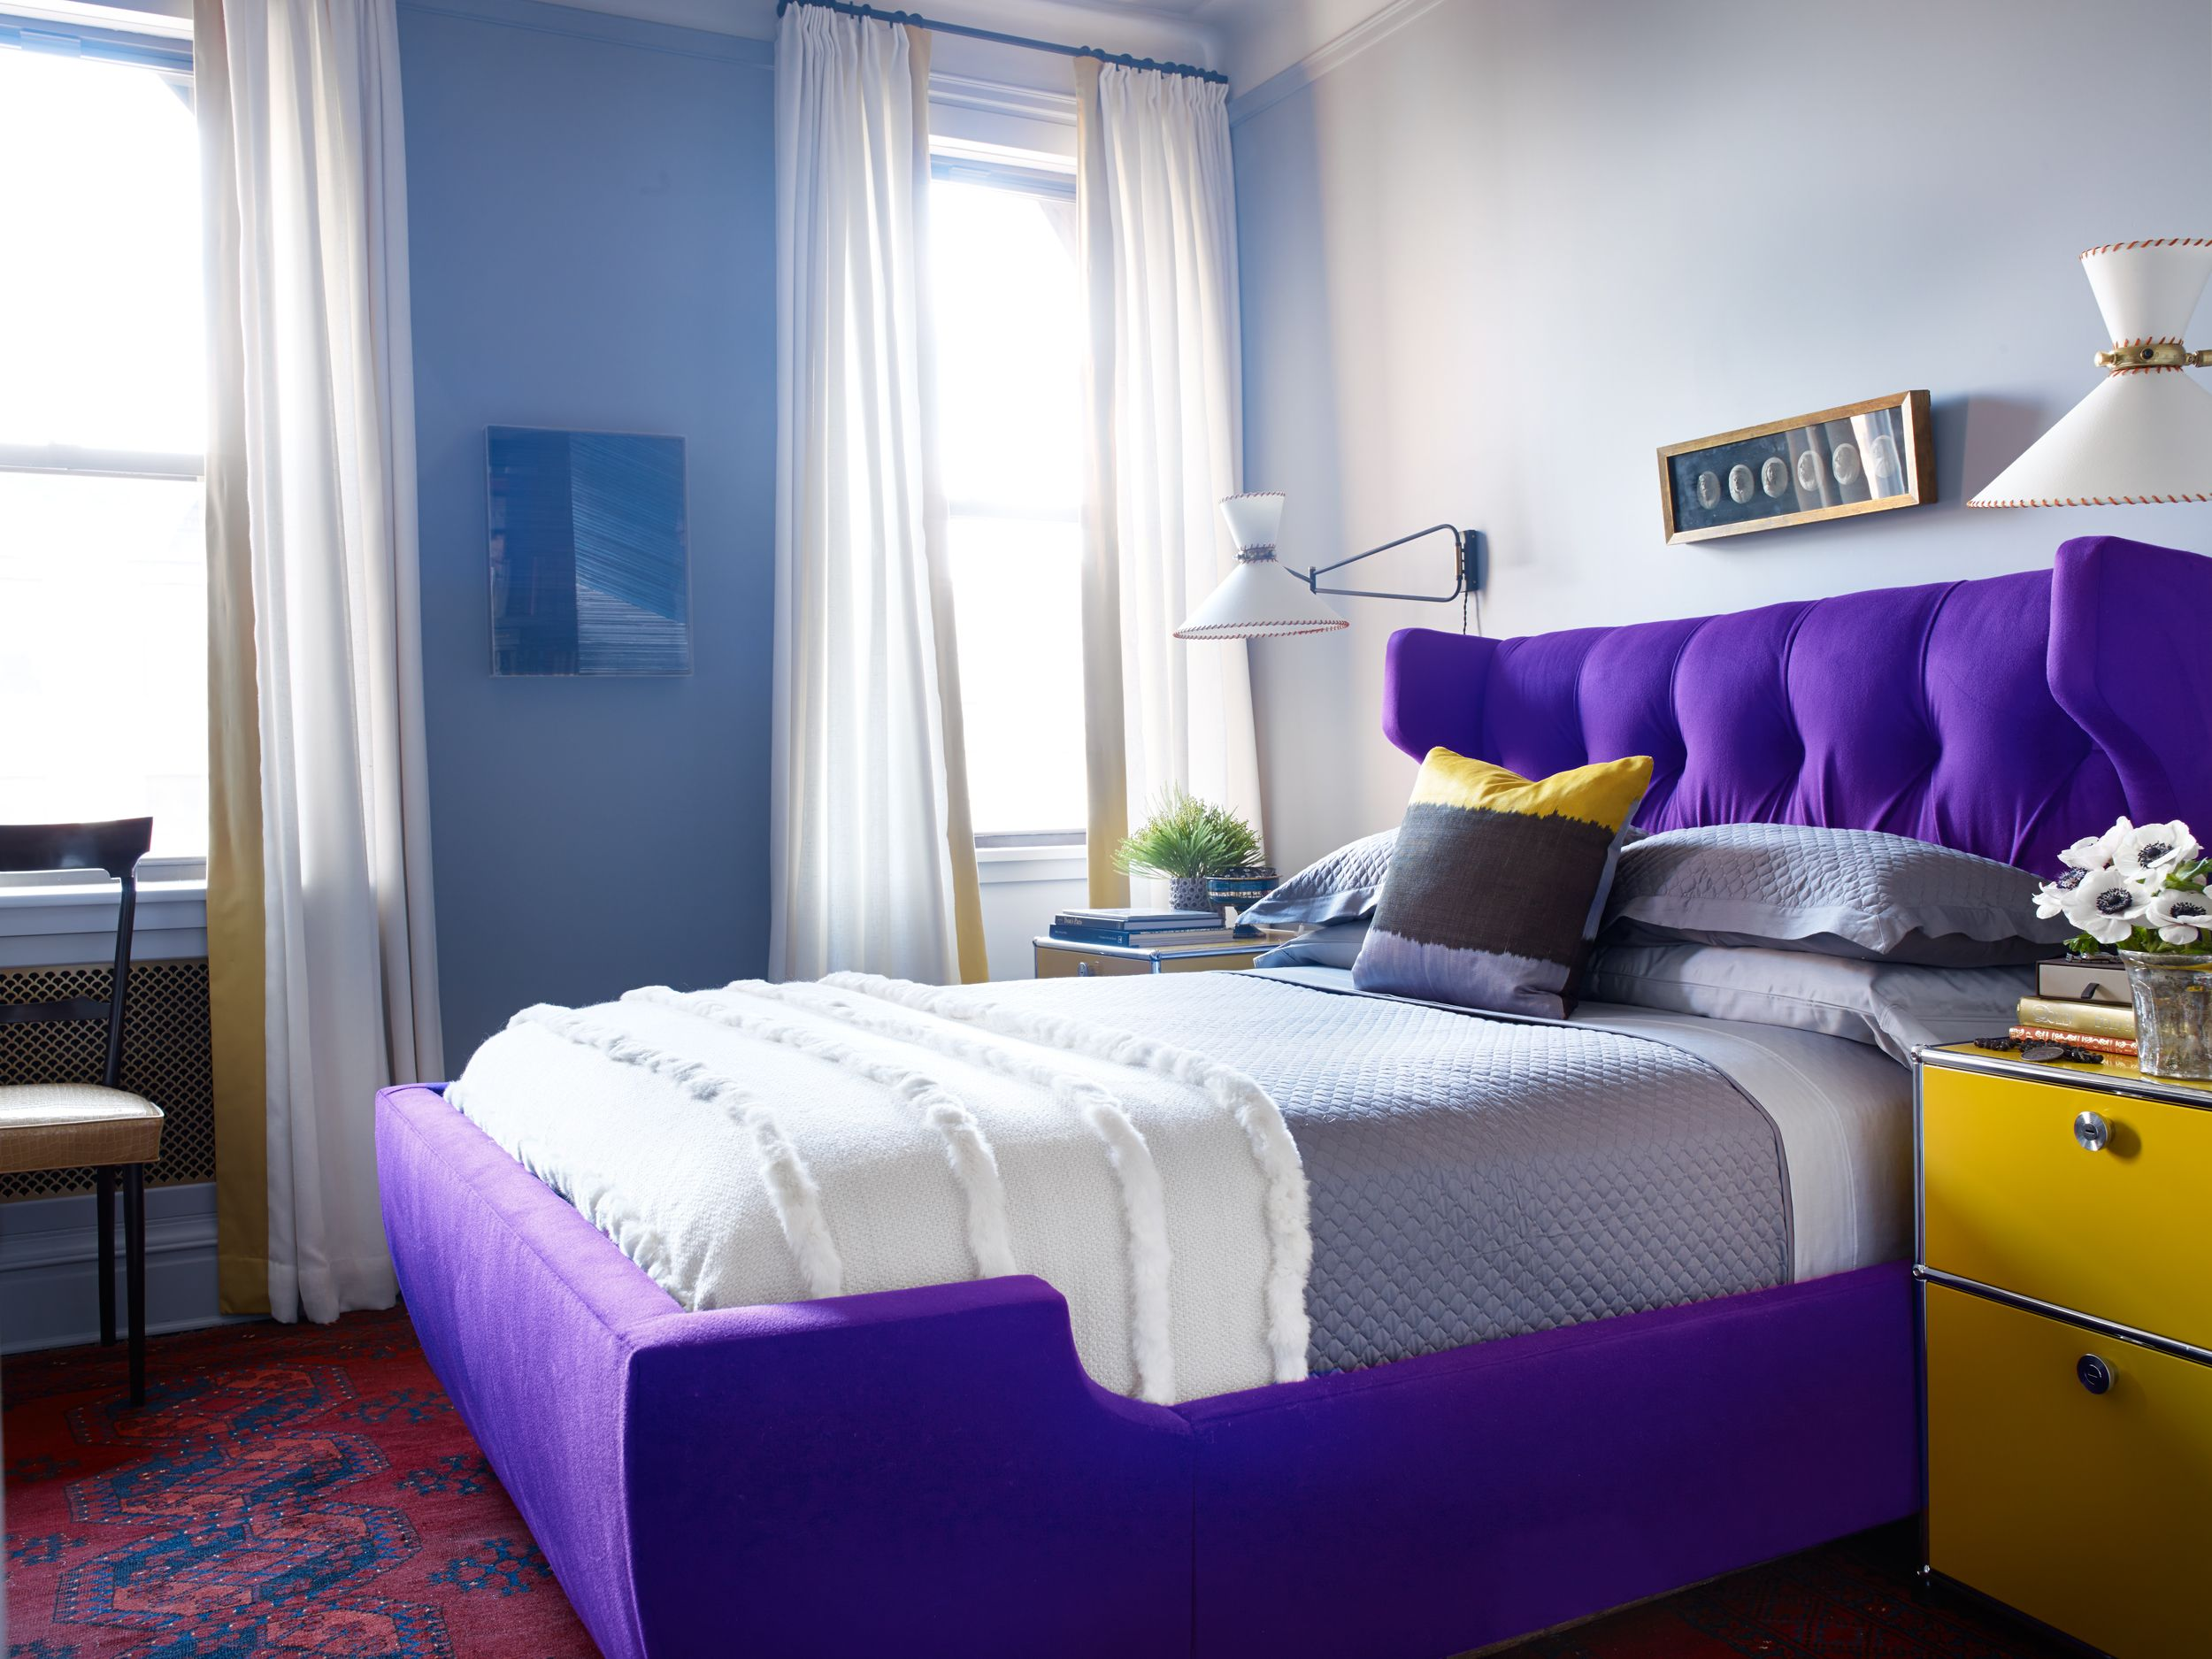 Bedroom Colors Bright 30 room colors for a vibrant home - paint colors for bright interior